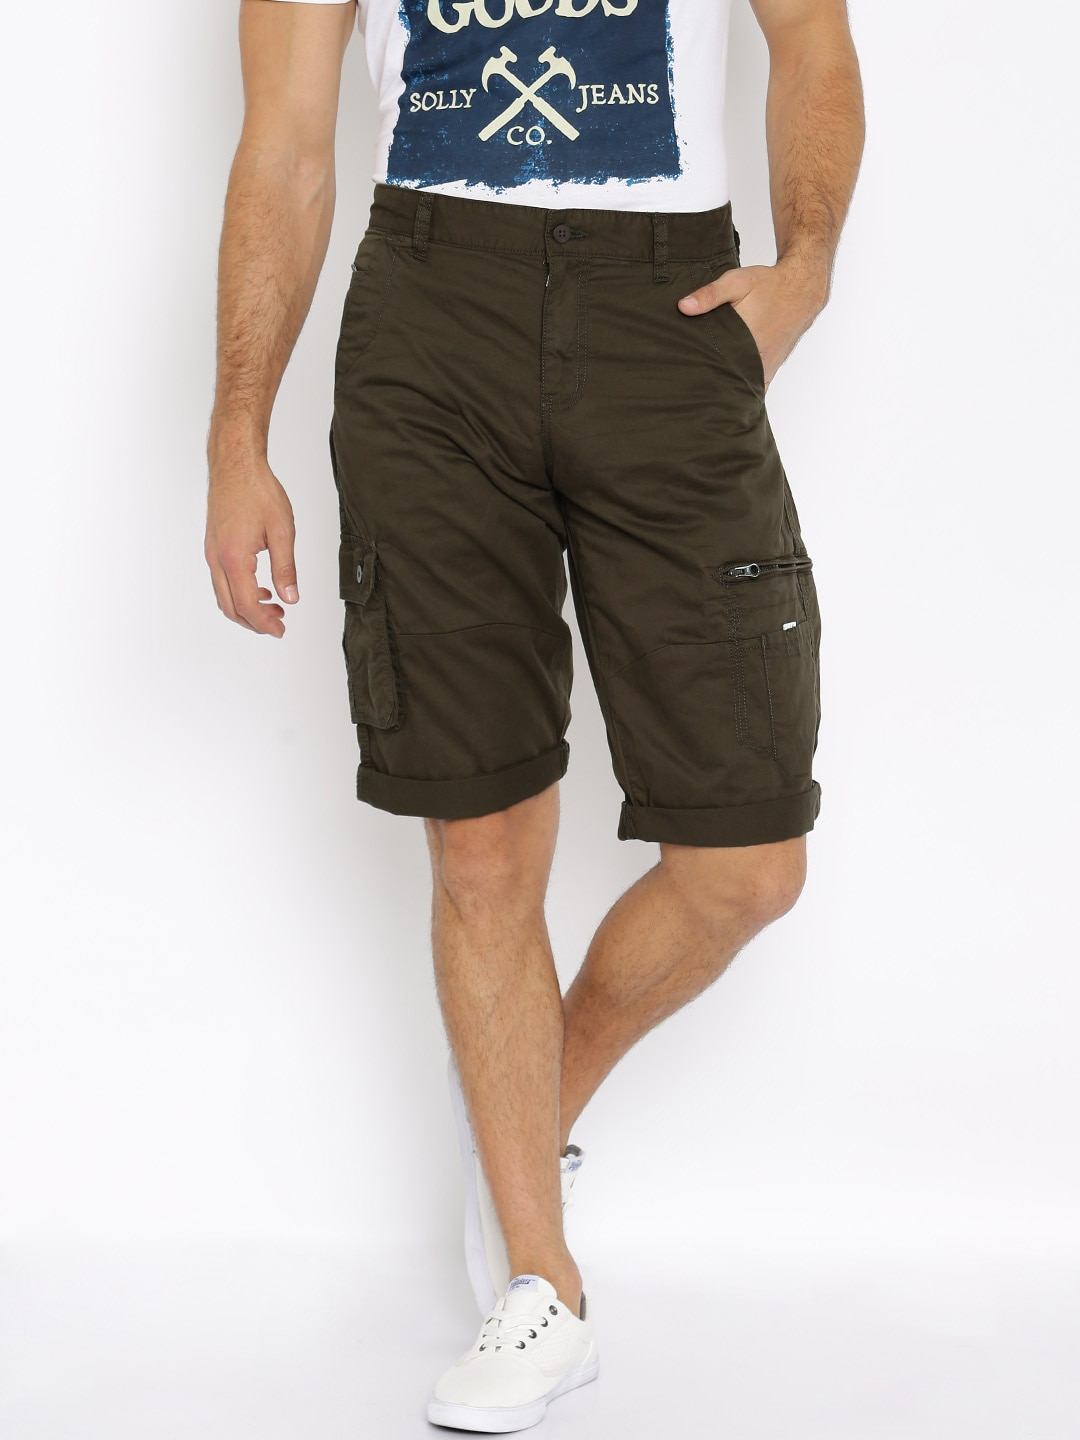 5e52cbe7 Buy Locomotive Blue Slim Fit Cargo Shorts - Shorts for Men 1378862 ...